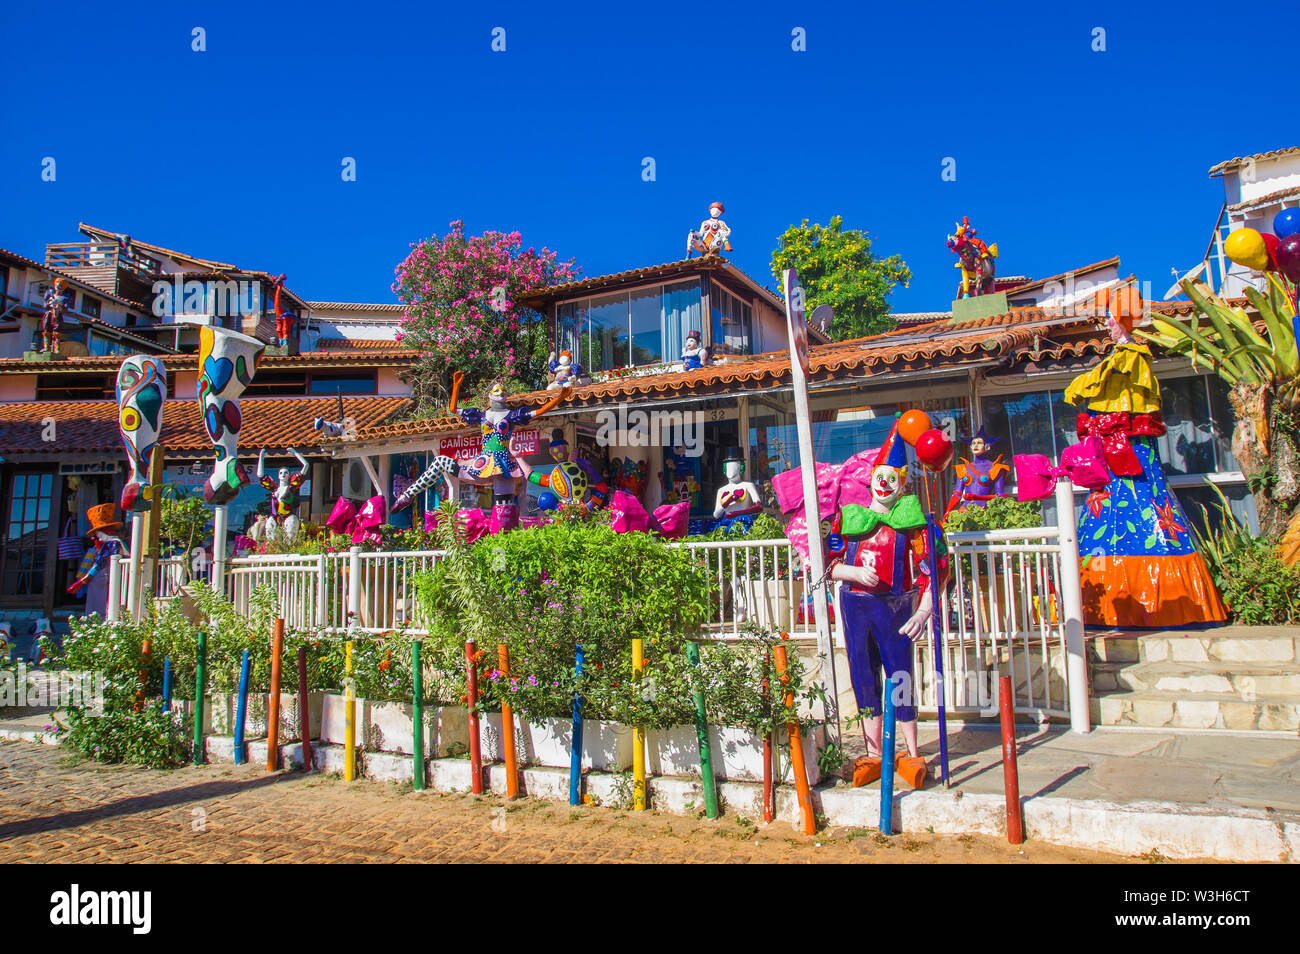 Buzios, Brazil - february 24, 2018: Streets of Buzios are filled with shops and restaurants are popular for tourists to visit at night time. - Stock Image